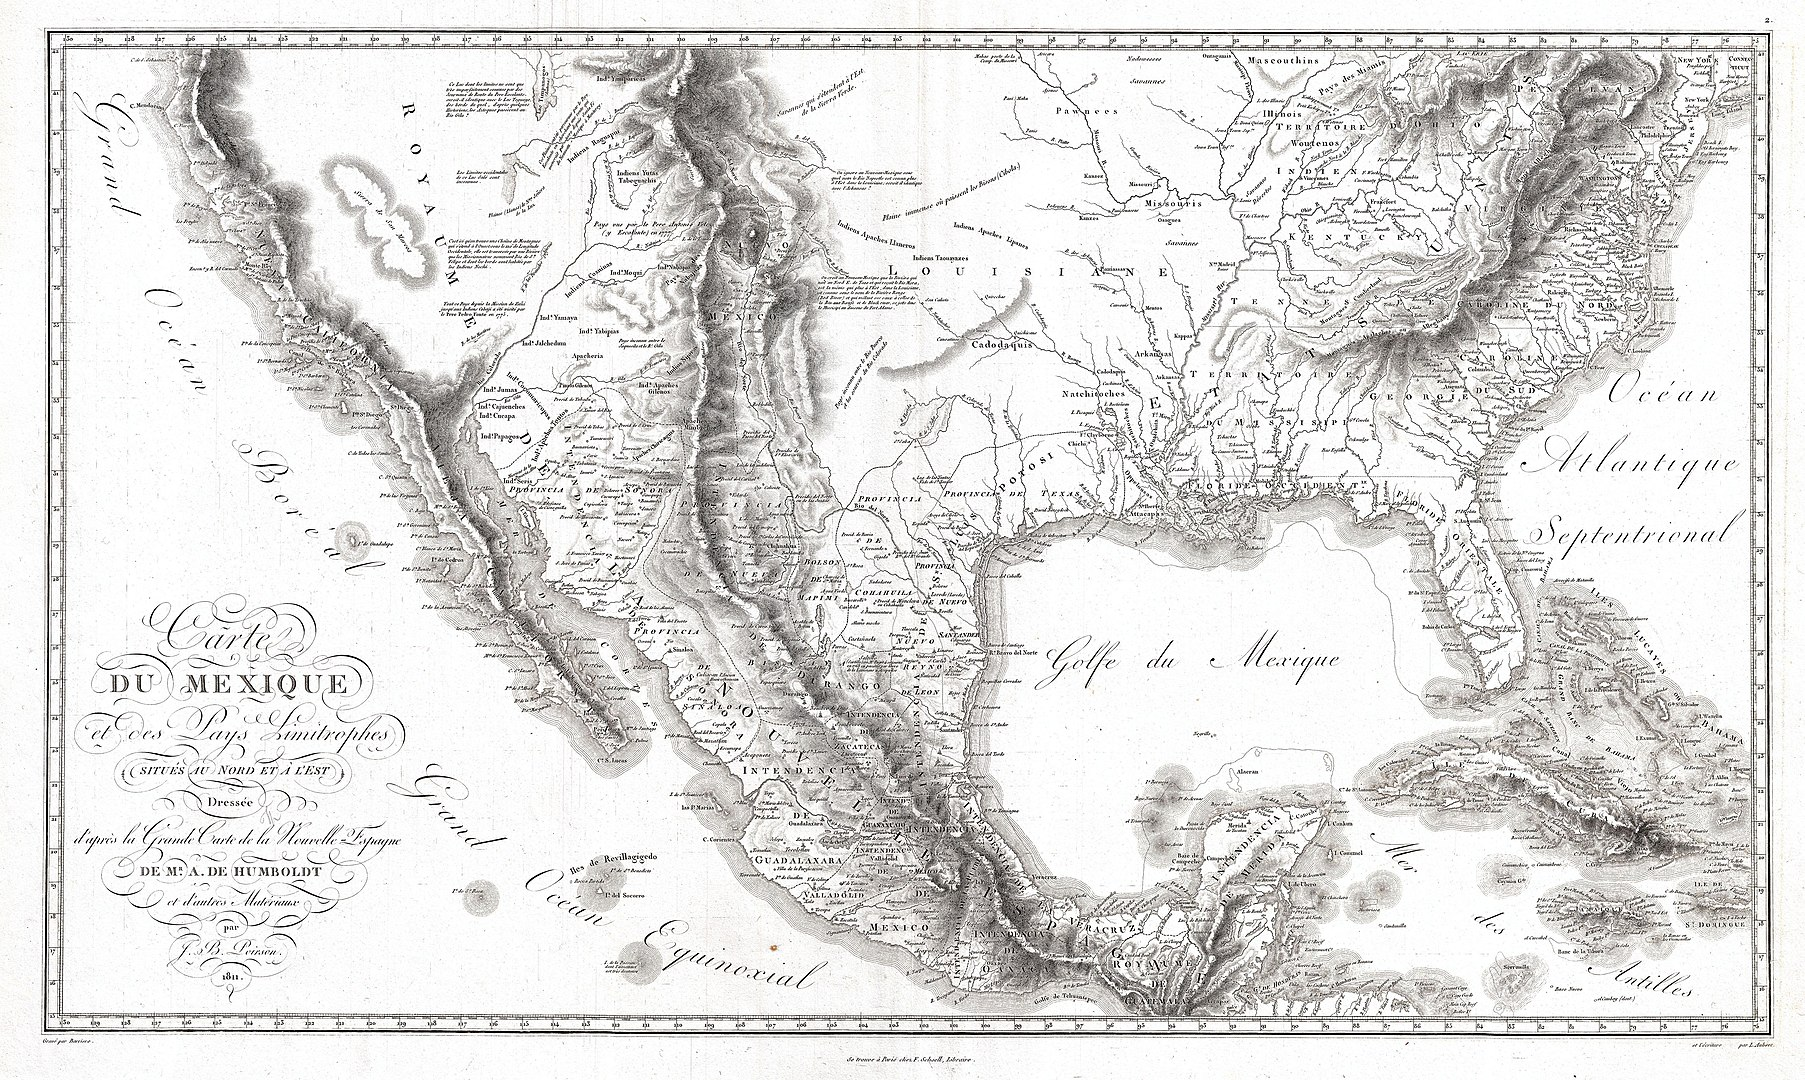 1805px 1811 Humboldt Map of Mexico Texas Louisiana and Florida Geographicus Mexique humboldt 1811